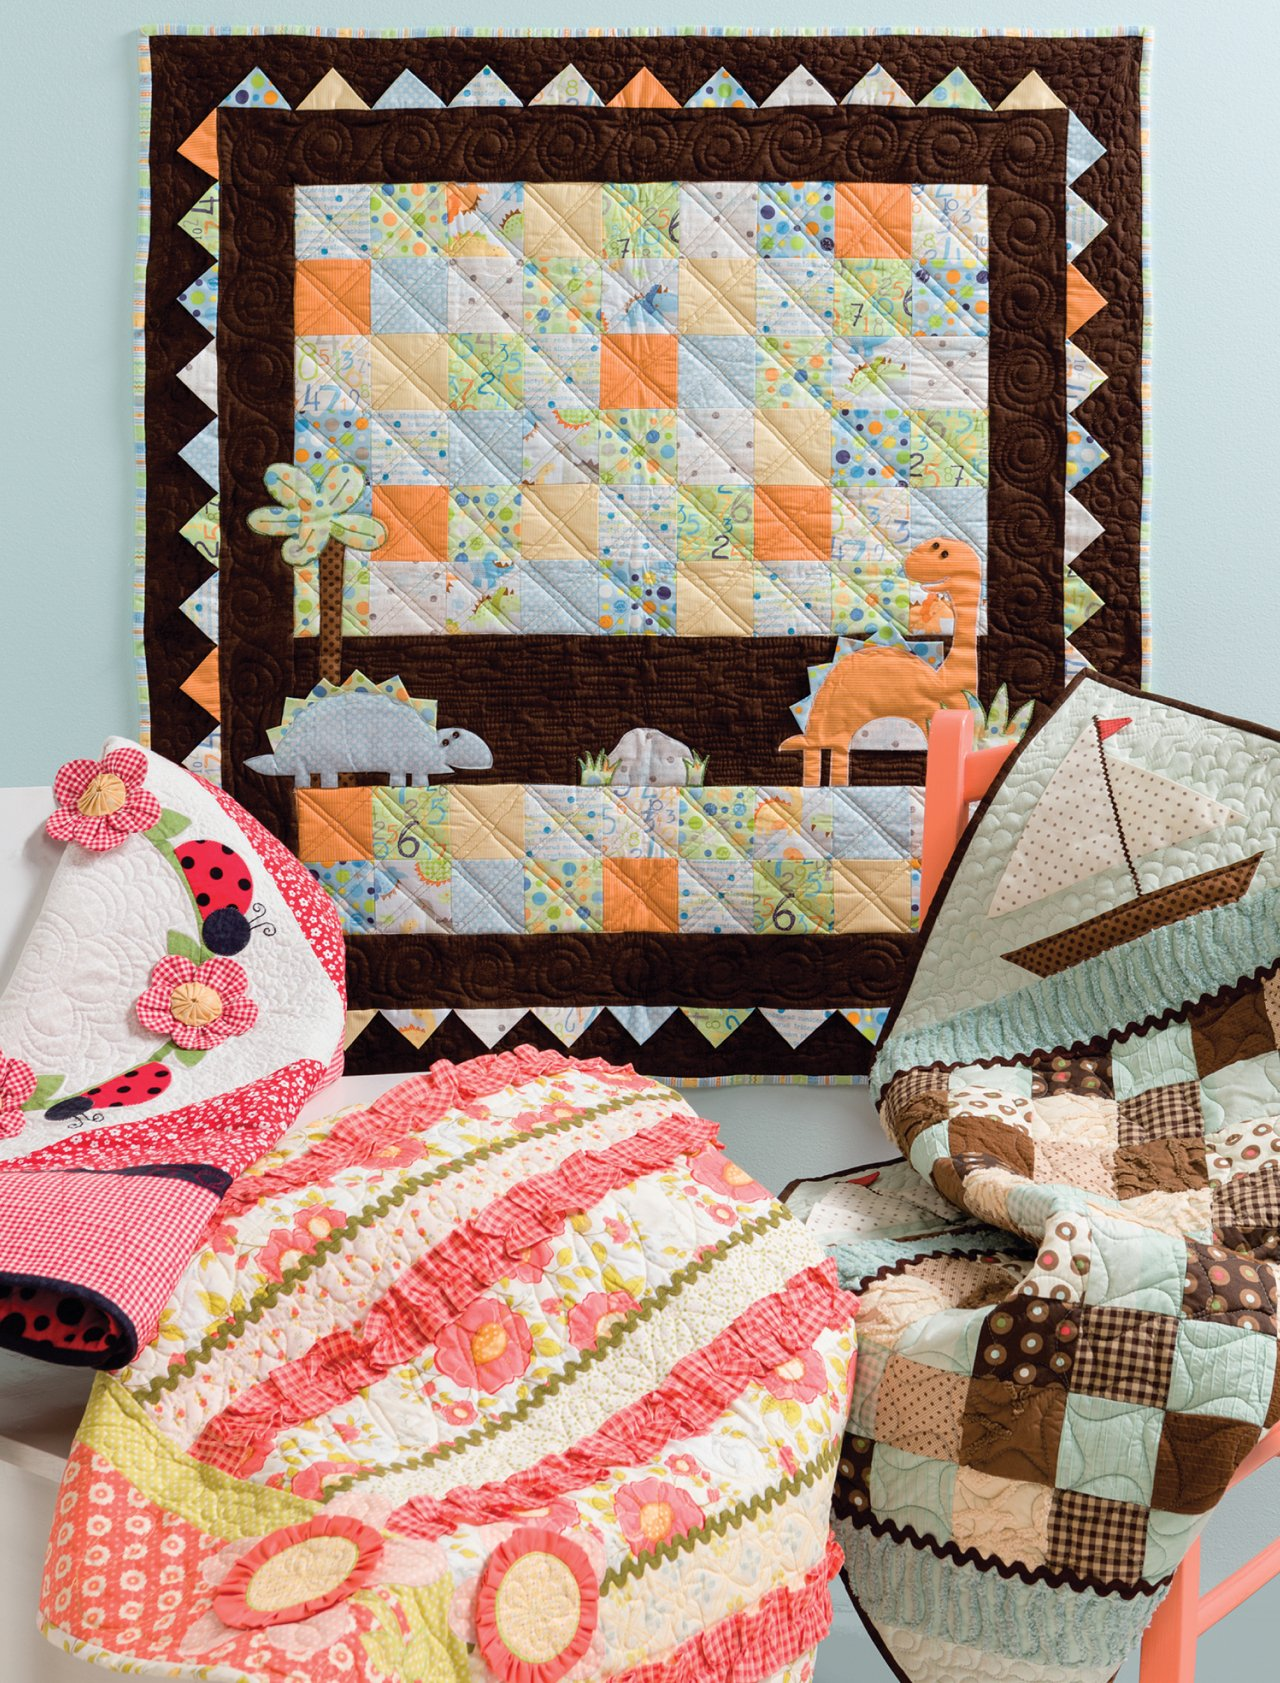 Cute Quilts for Kids: Kristin Roylance: 9781604682564: Amazon.com ... : quilting with kids - Adamdwight.com